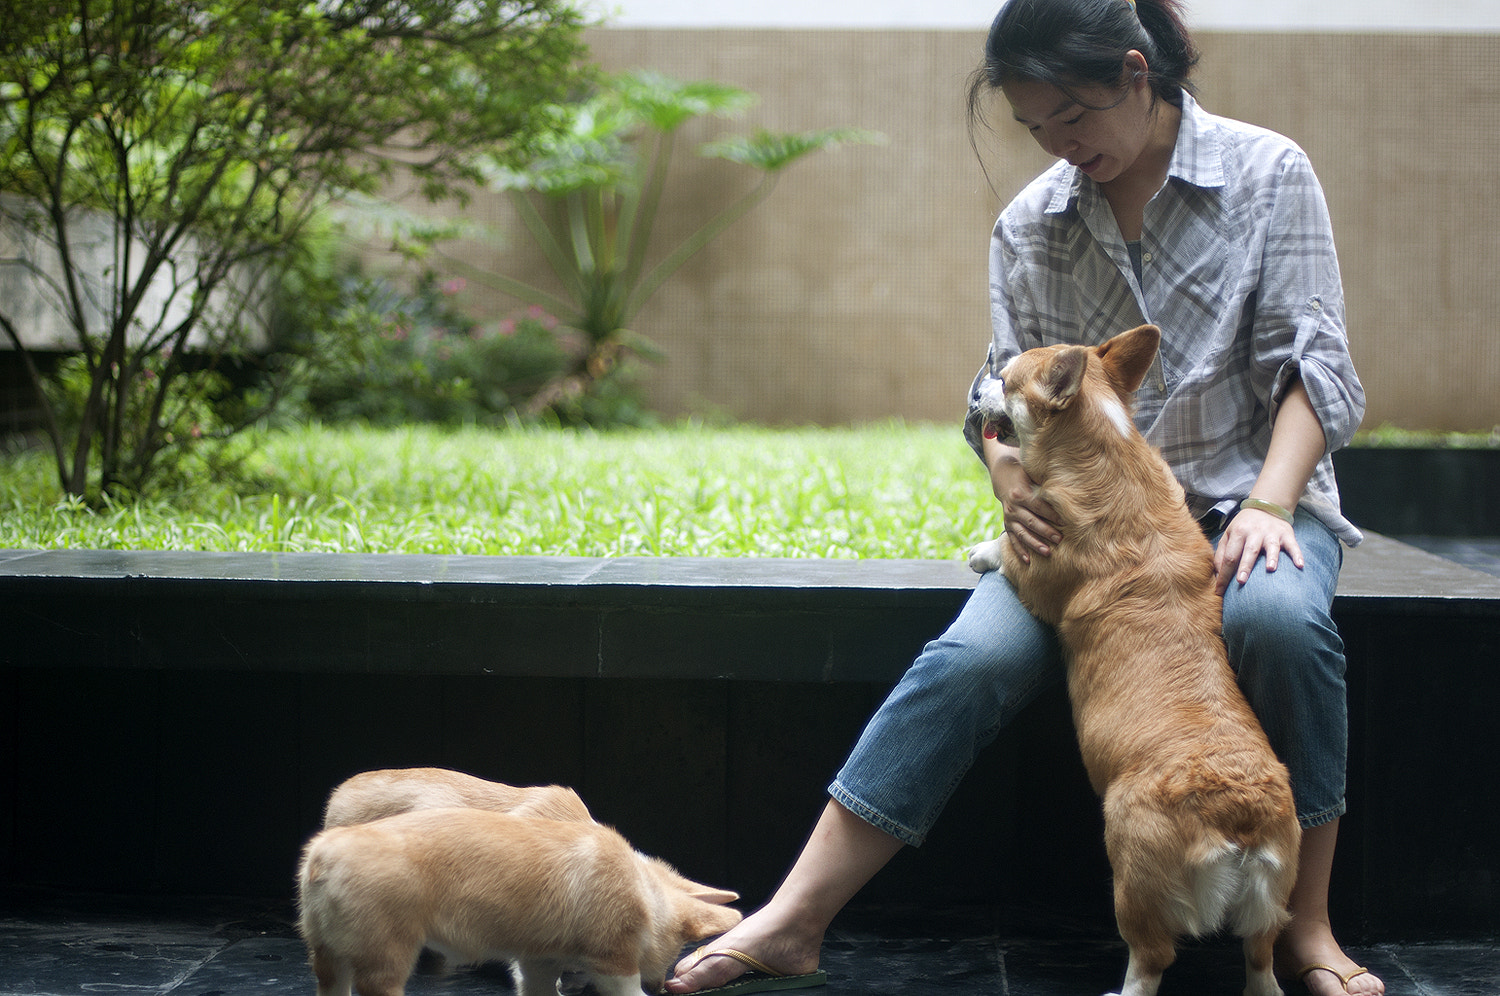 Photograph Ying & dogs by F. Daniel on 500px